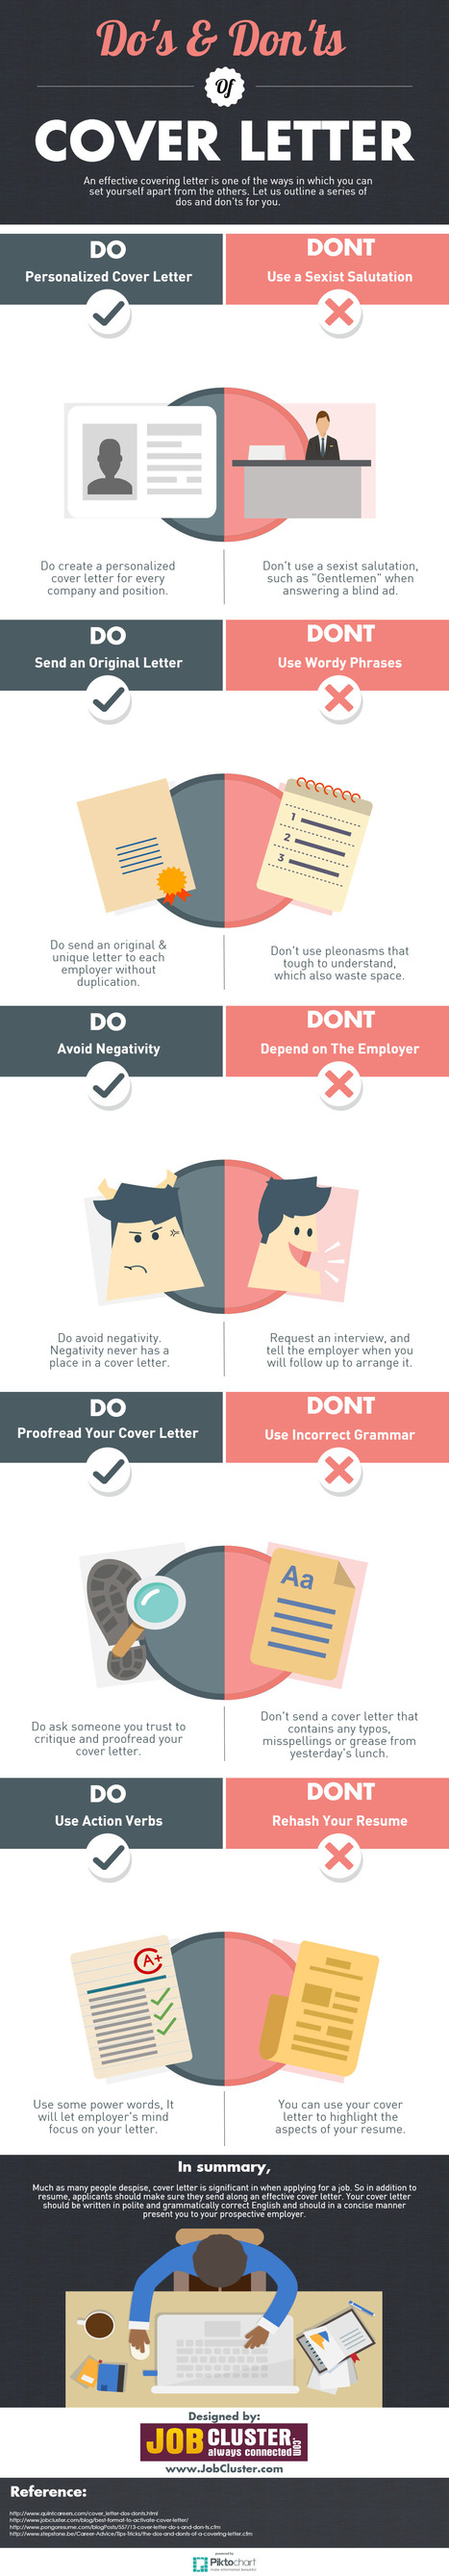 Cover Letter Dos and Donts for Job Seekers I